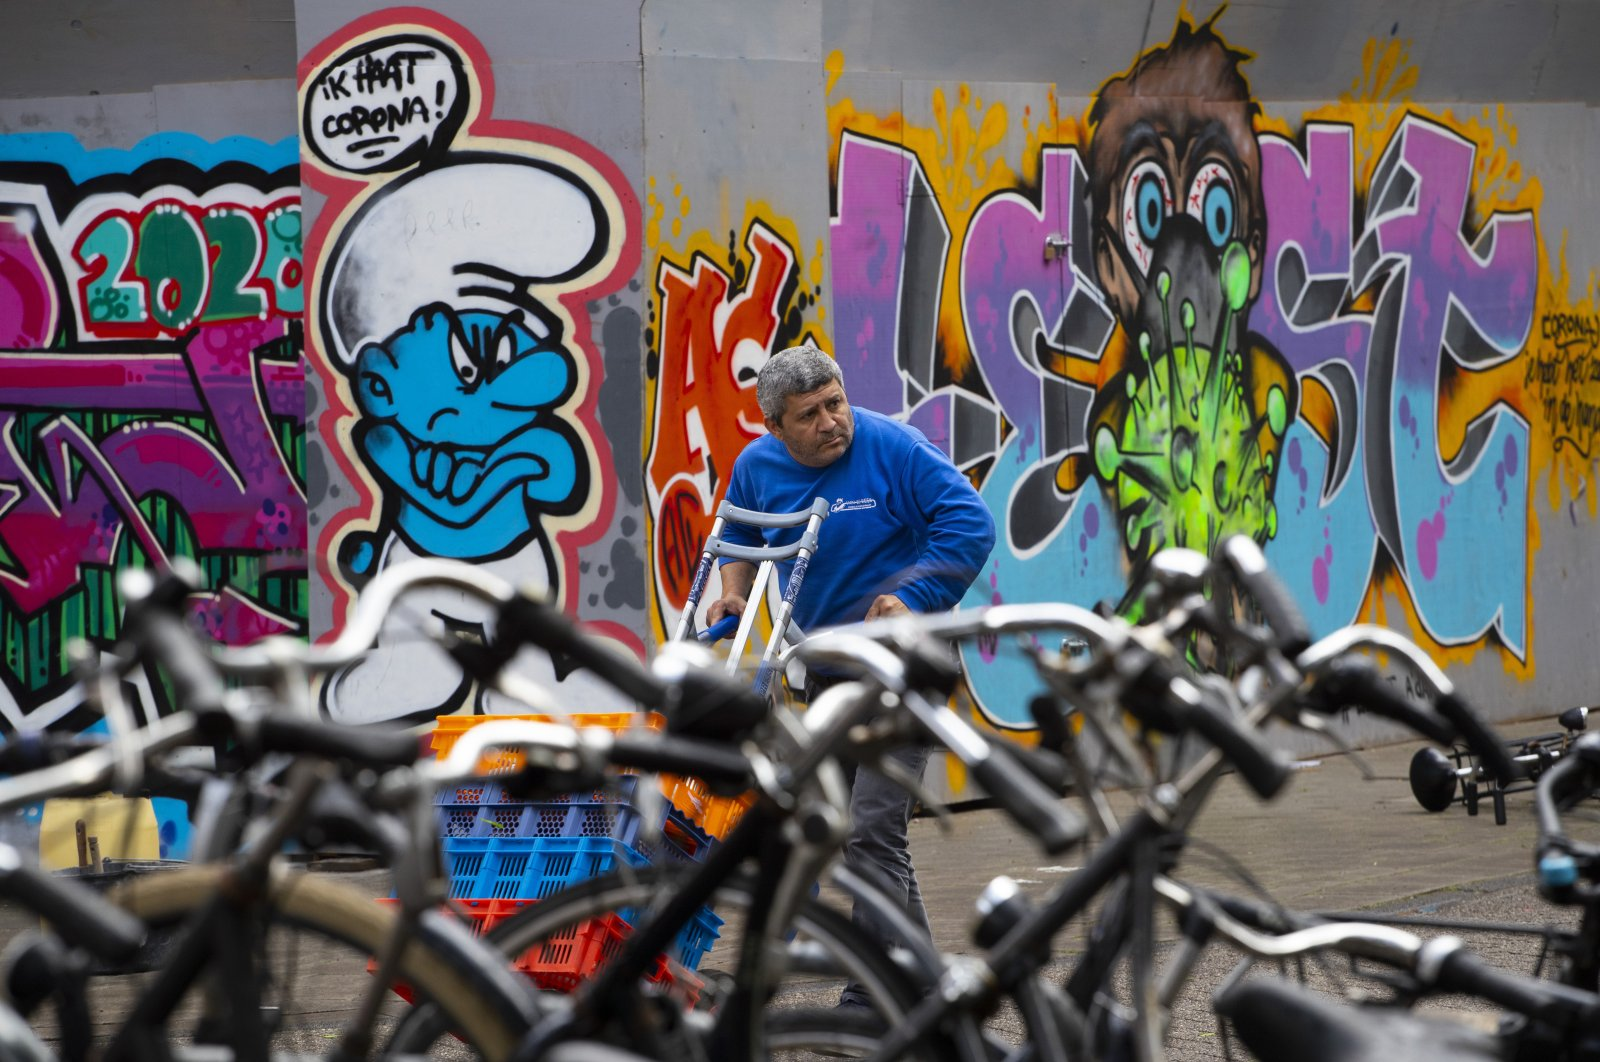 """A man delivering goods passes two COVID-19 related murals, one of a smurf reading """"I Hate Corona,"""" Amsterdam, the Netherlands, May 1, 2020. (AP Photo)"""